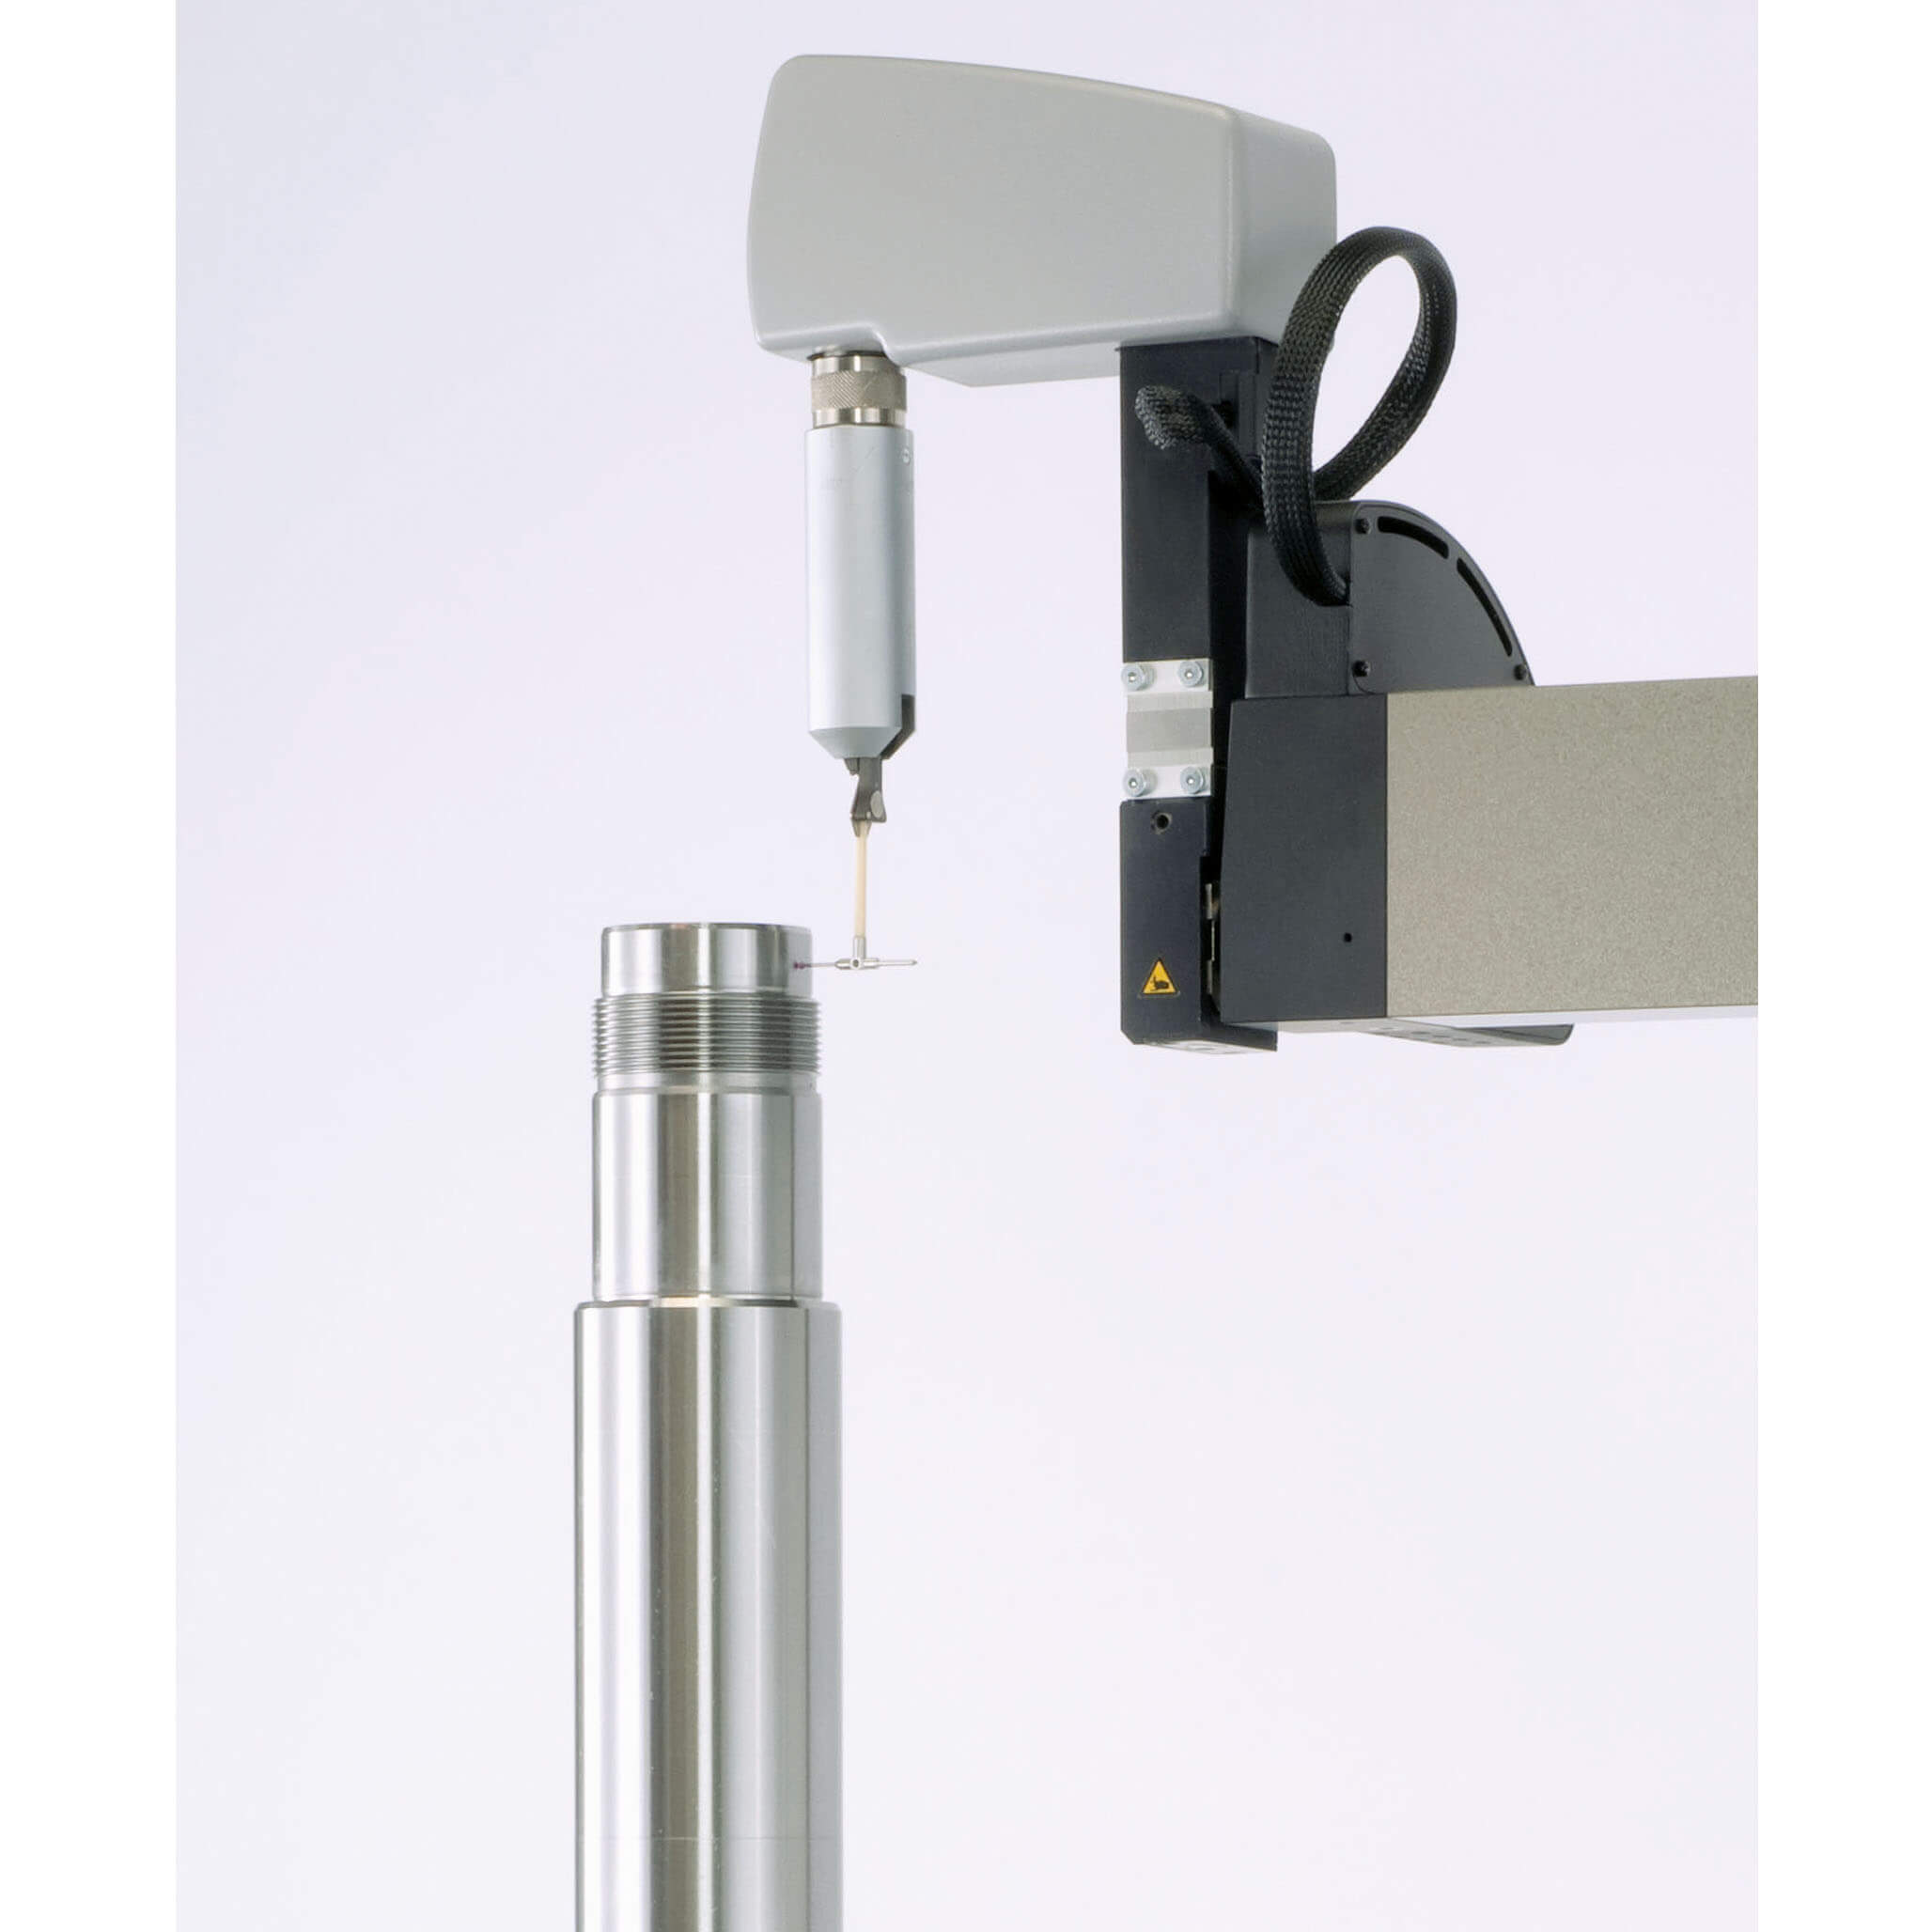 Roundscan Roundness and Form Measurement Probe